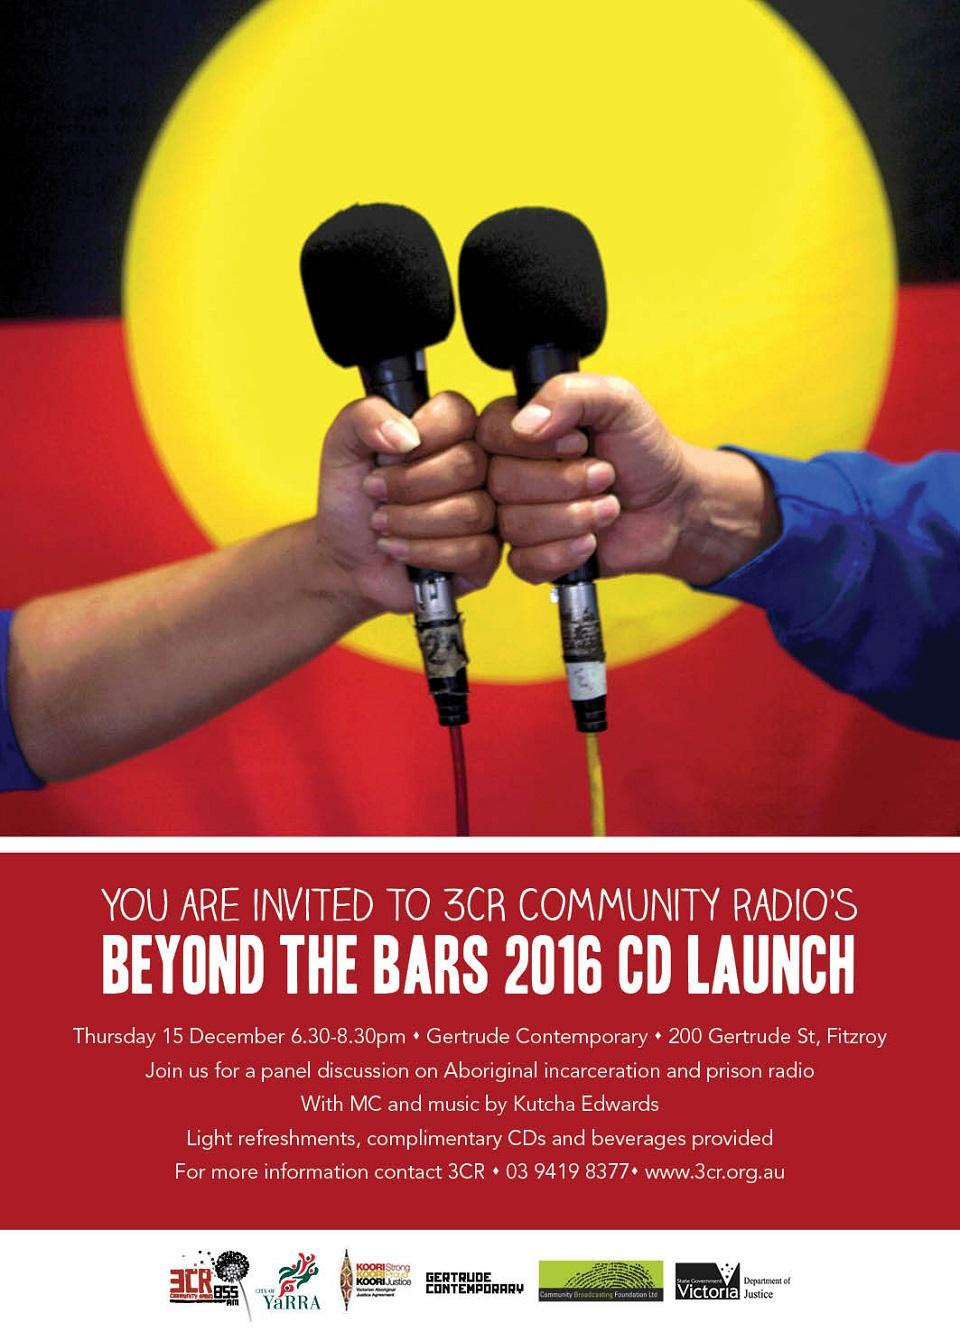 Beyond the Bars CD Launch 2016